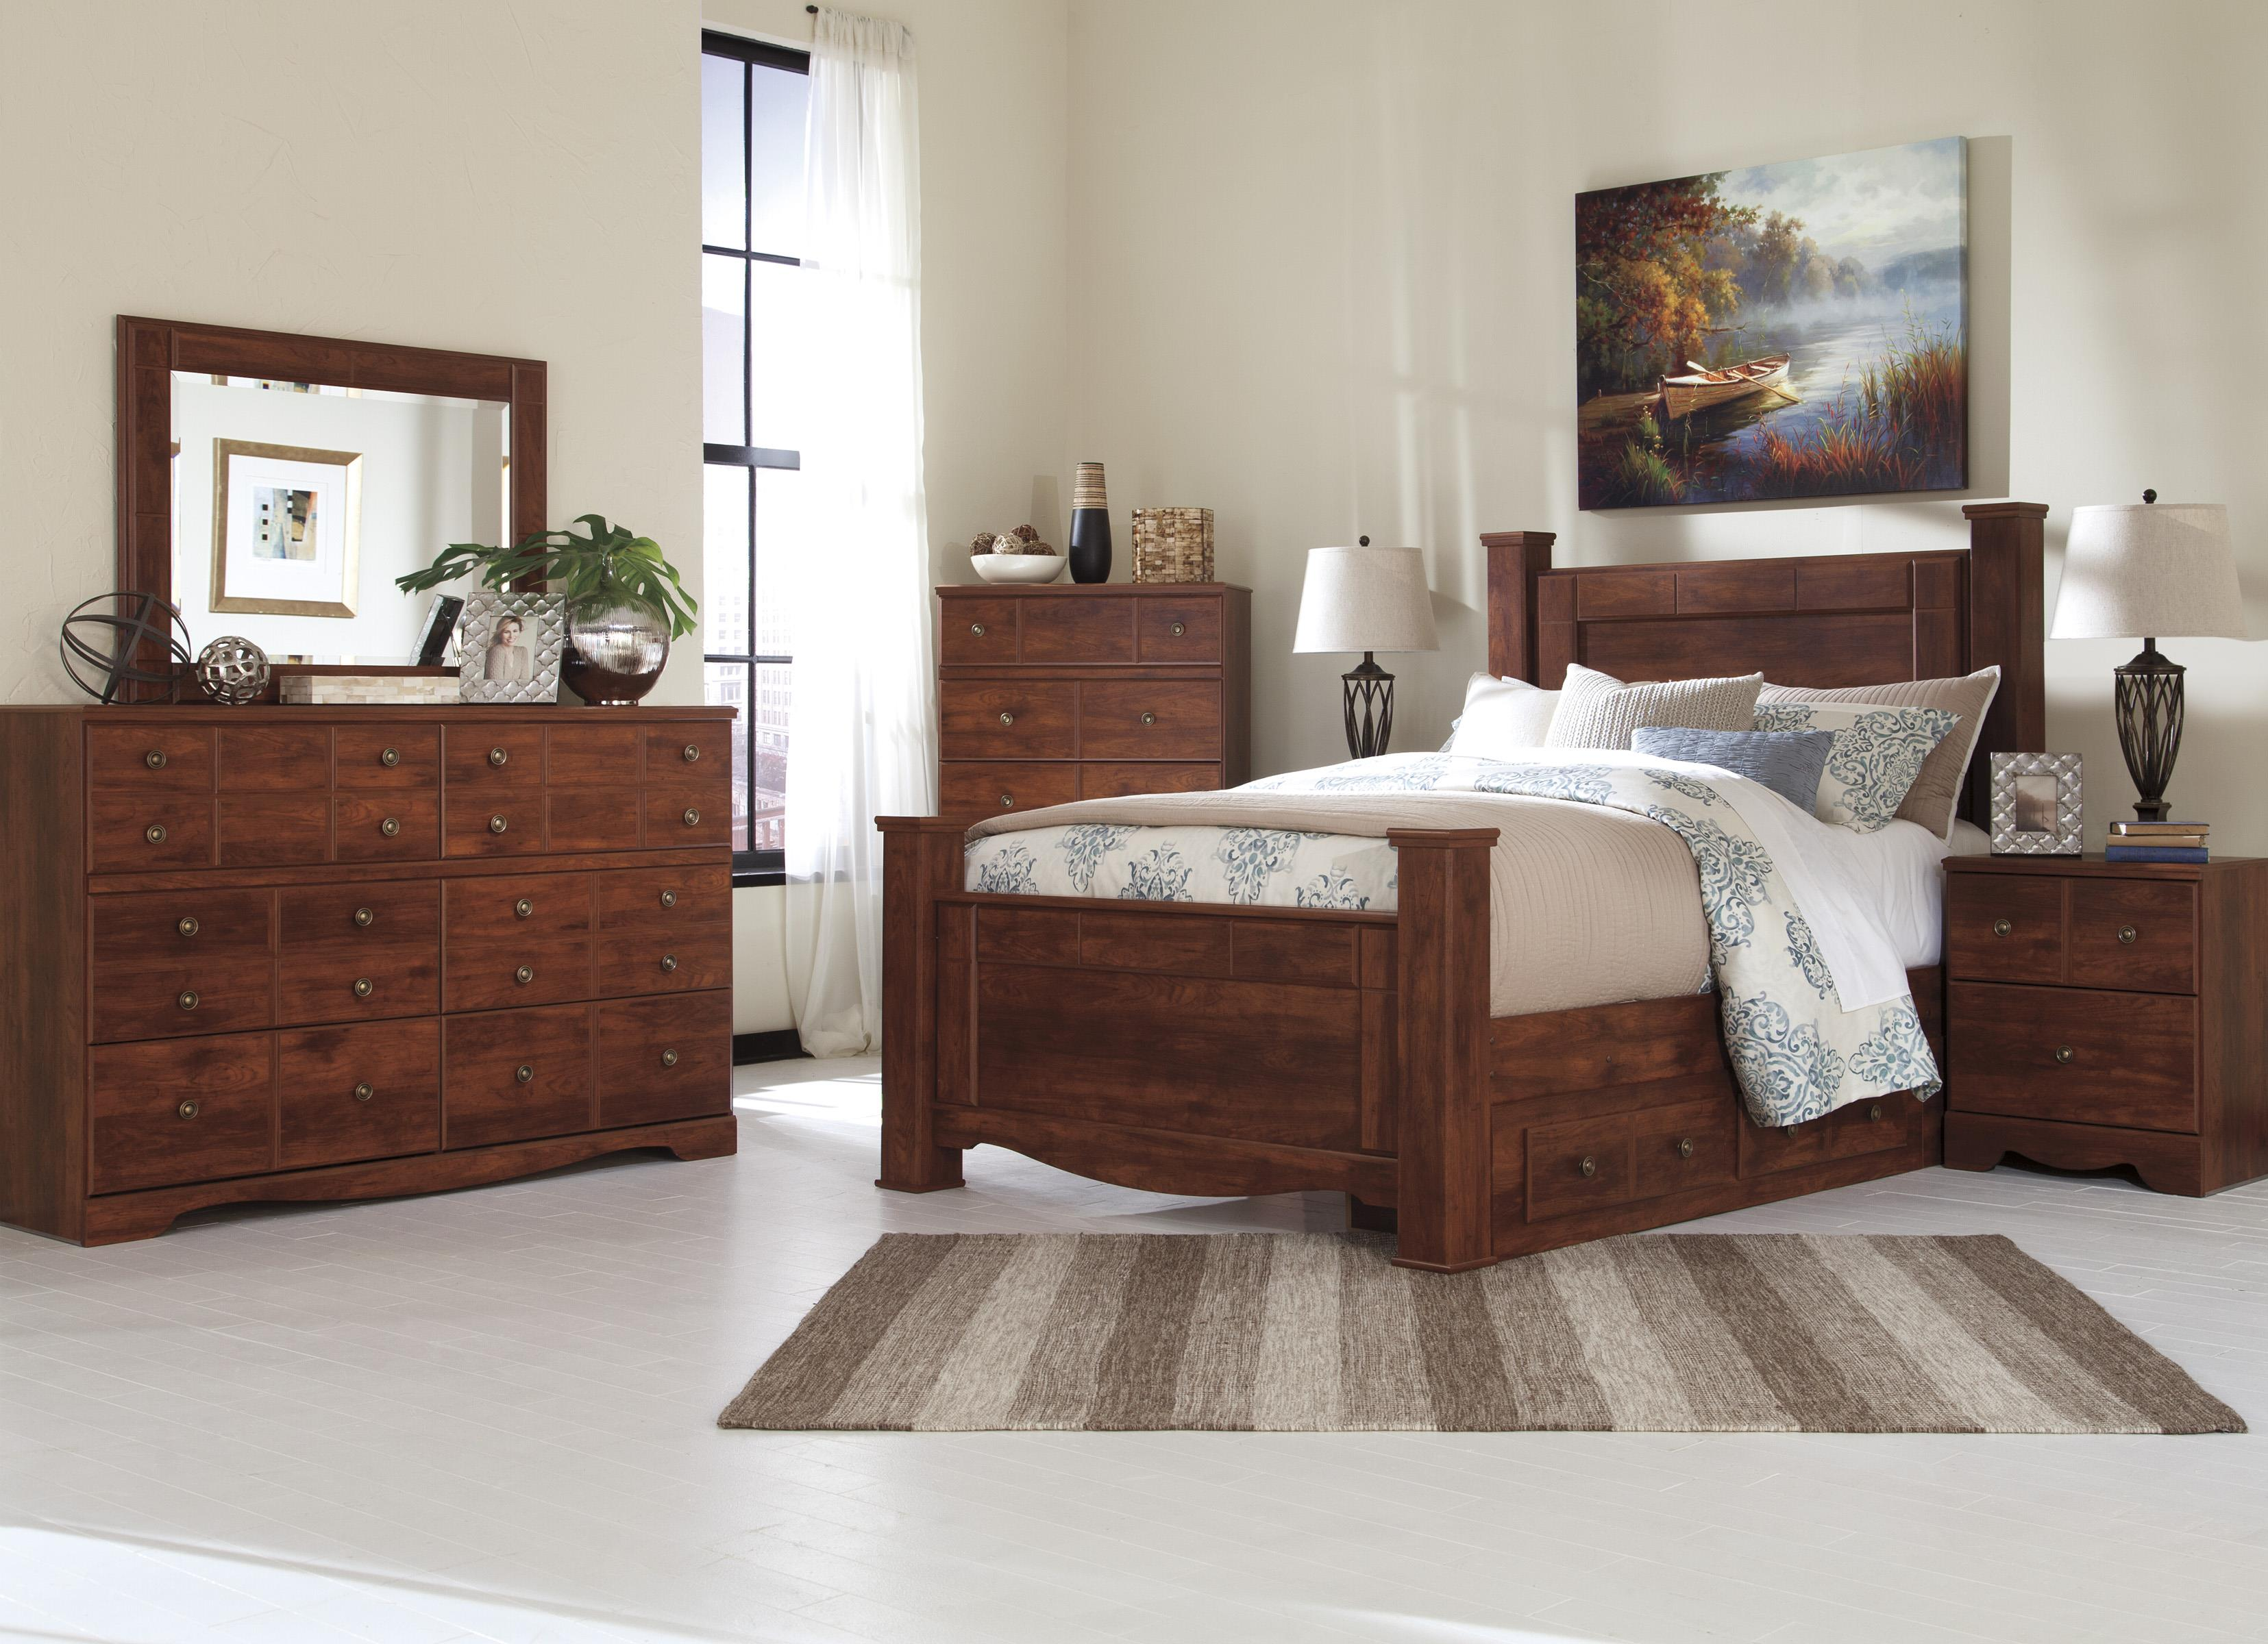 Signature Design by Ashley Brittberg Queen Bedroom Group - Item Number: B265 Q Bedroom Group 2